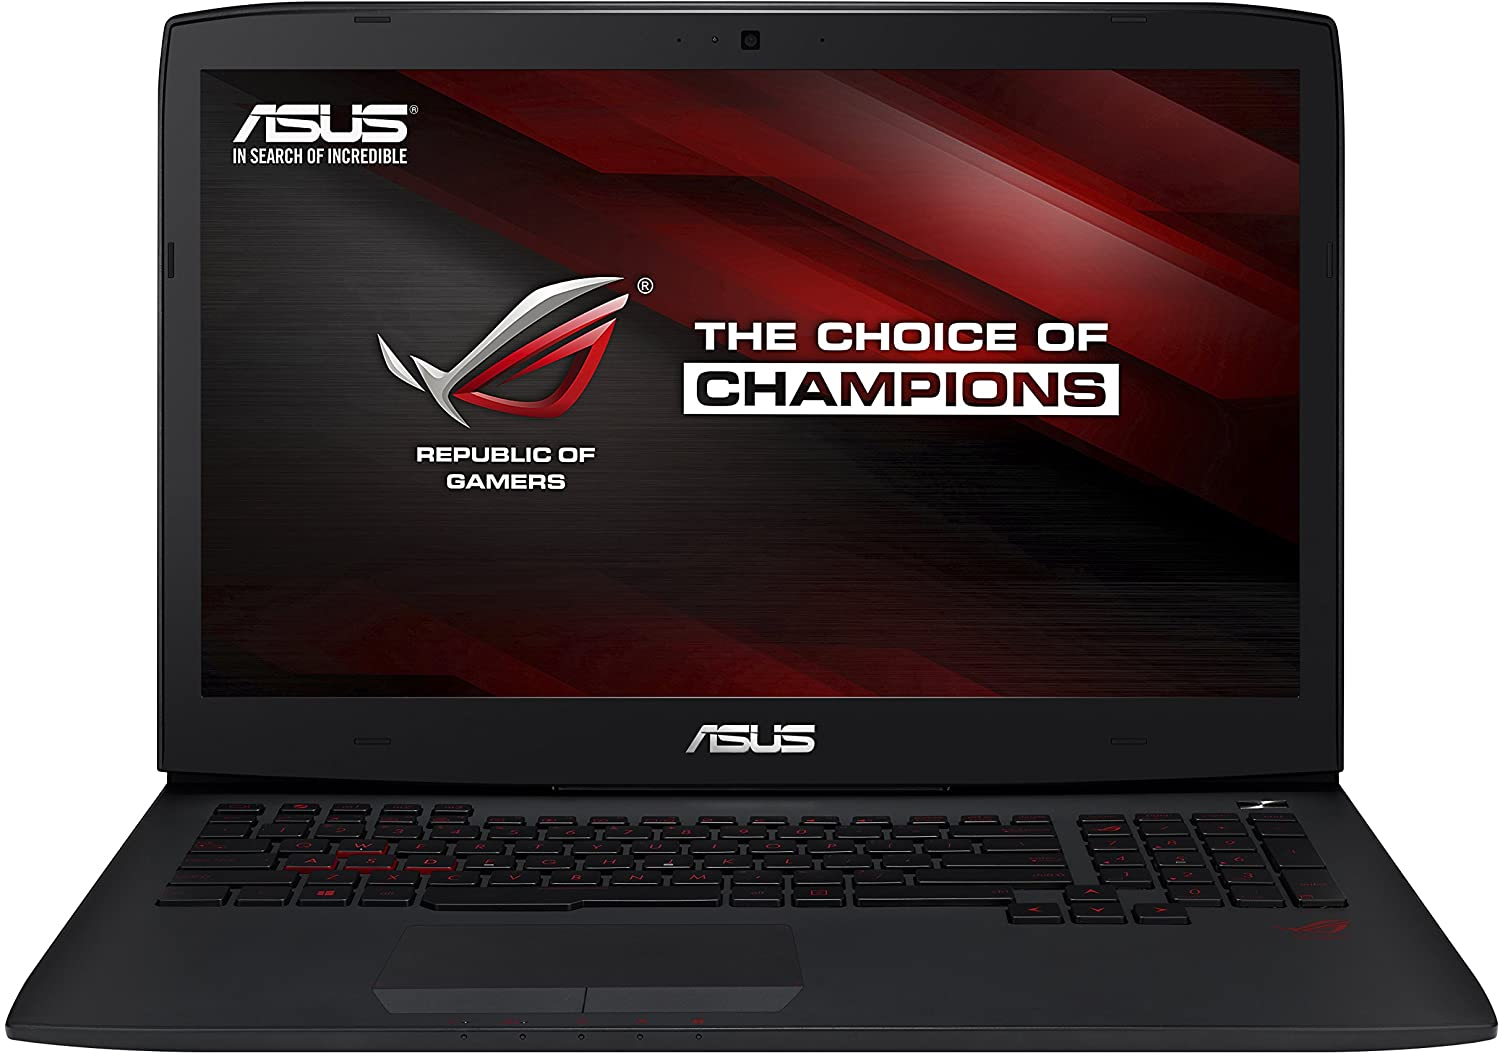 ASUS G751JT 17-Inch Gaming Laptop [2014 model]